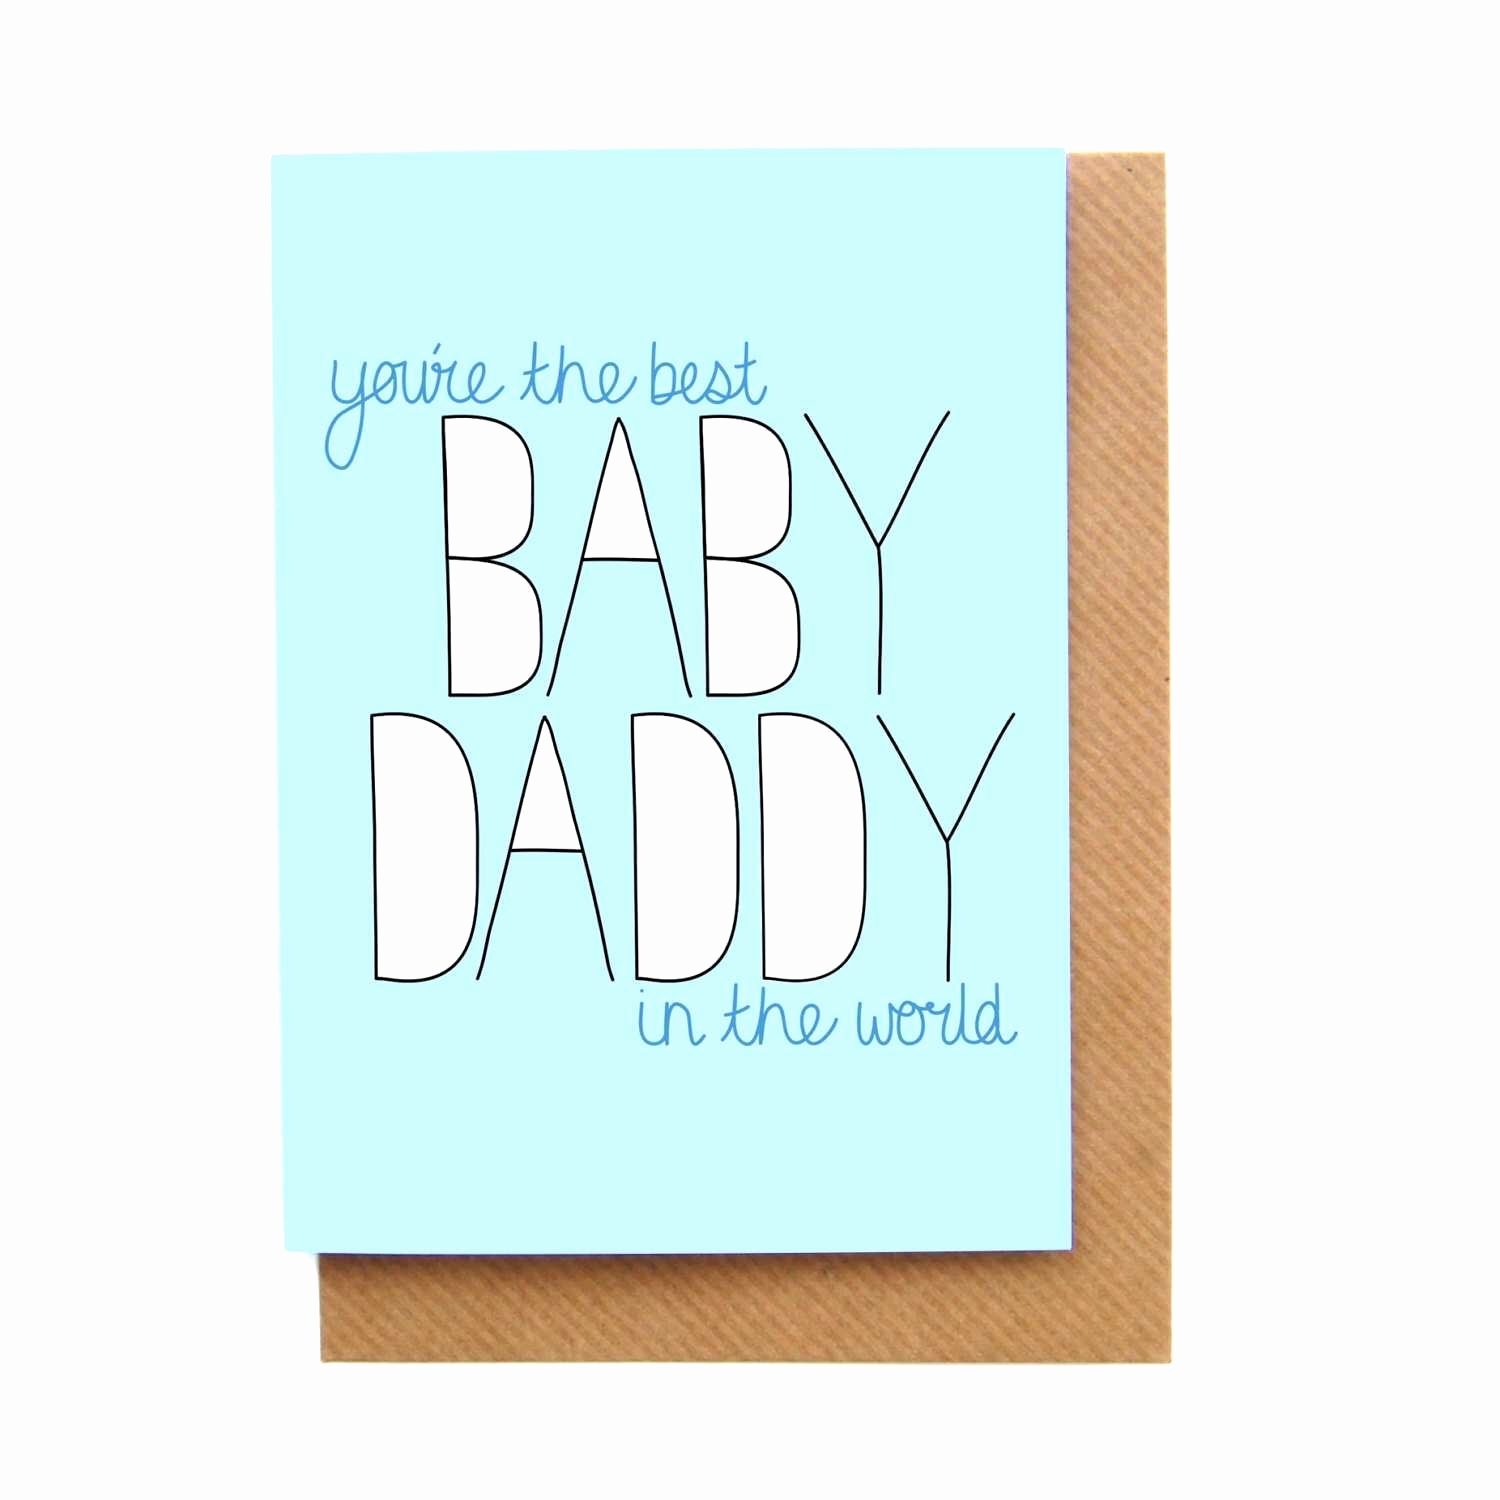 Card Ideas For Dads Birthday Happy Birthday Dad Card Ideas Best Of Dad Birthday Card Ideas